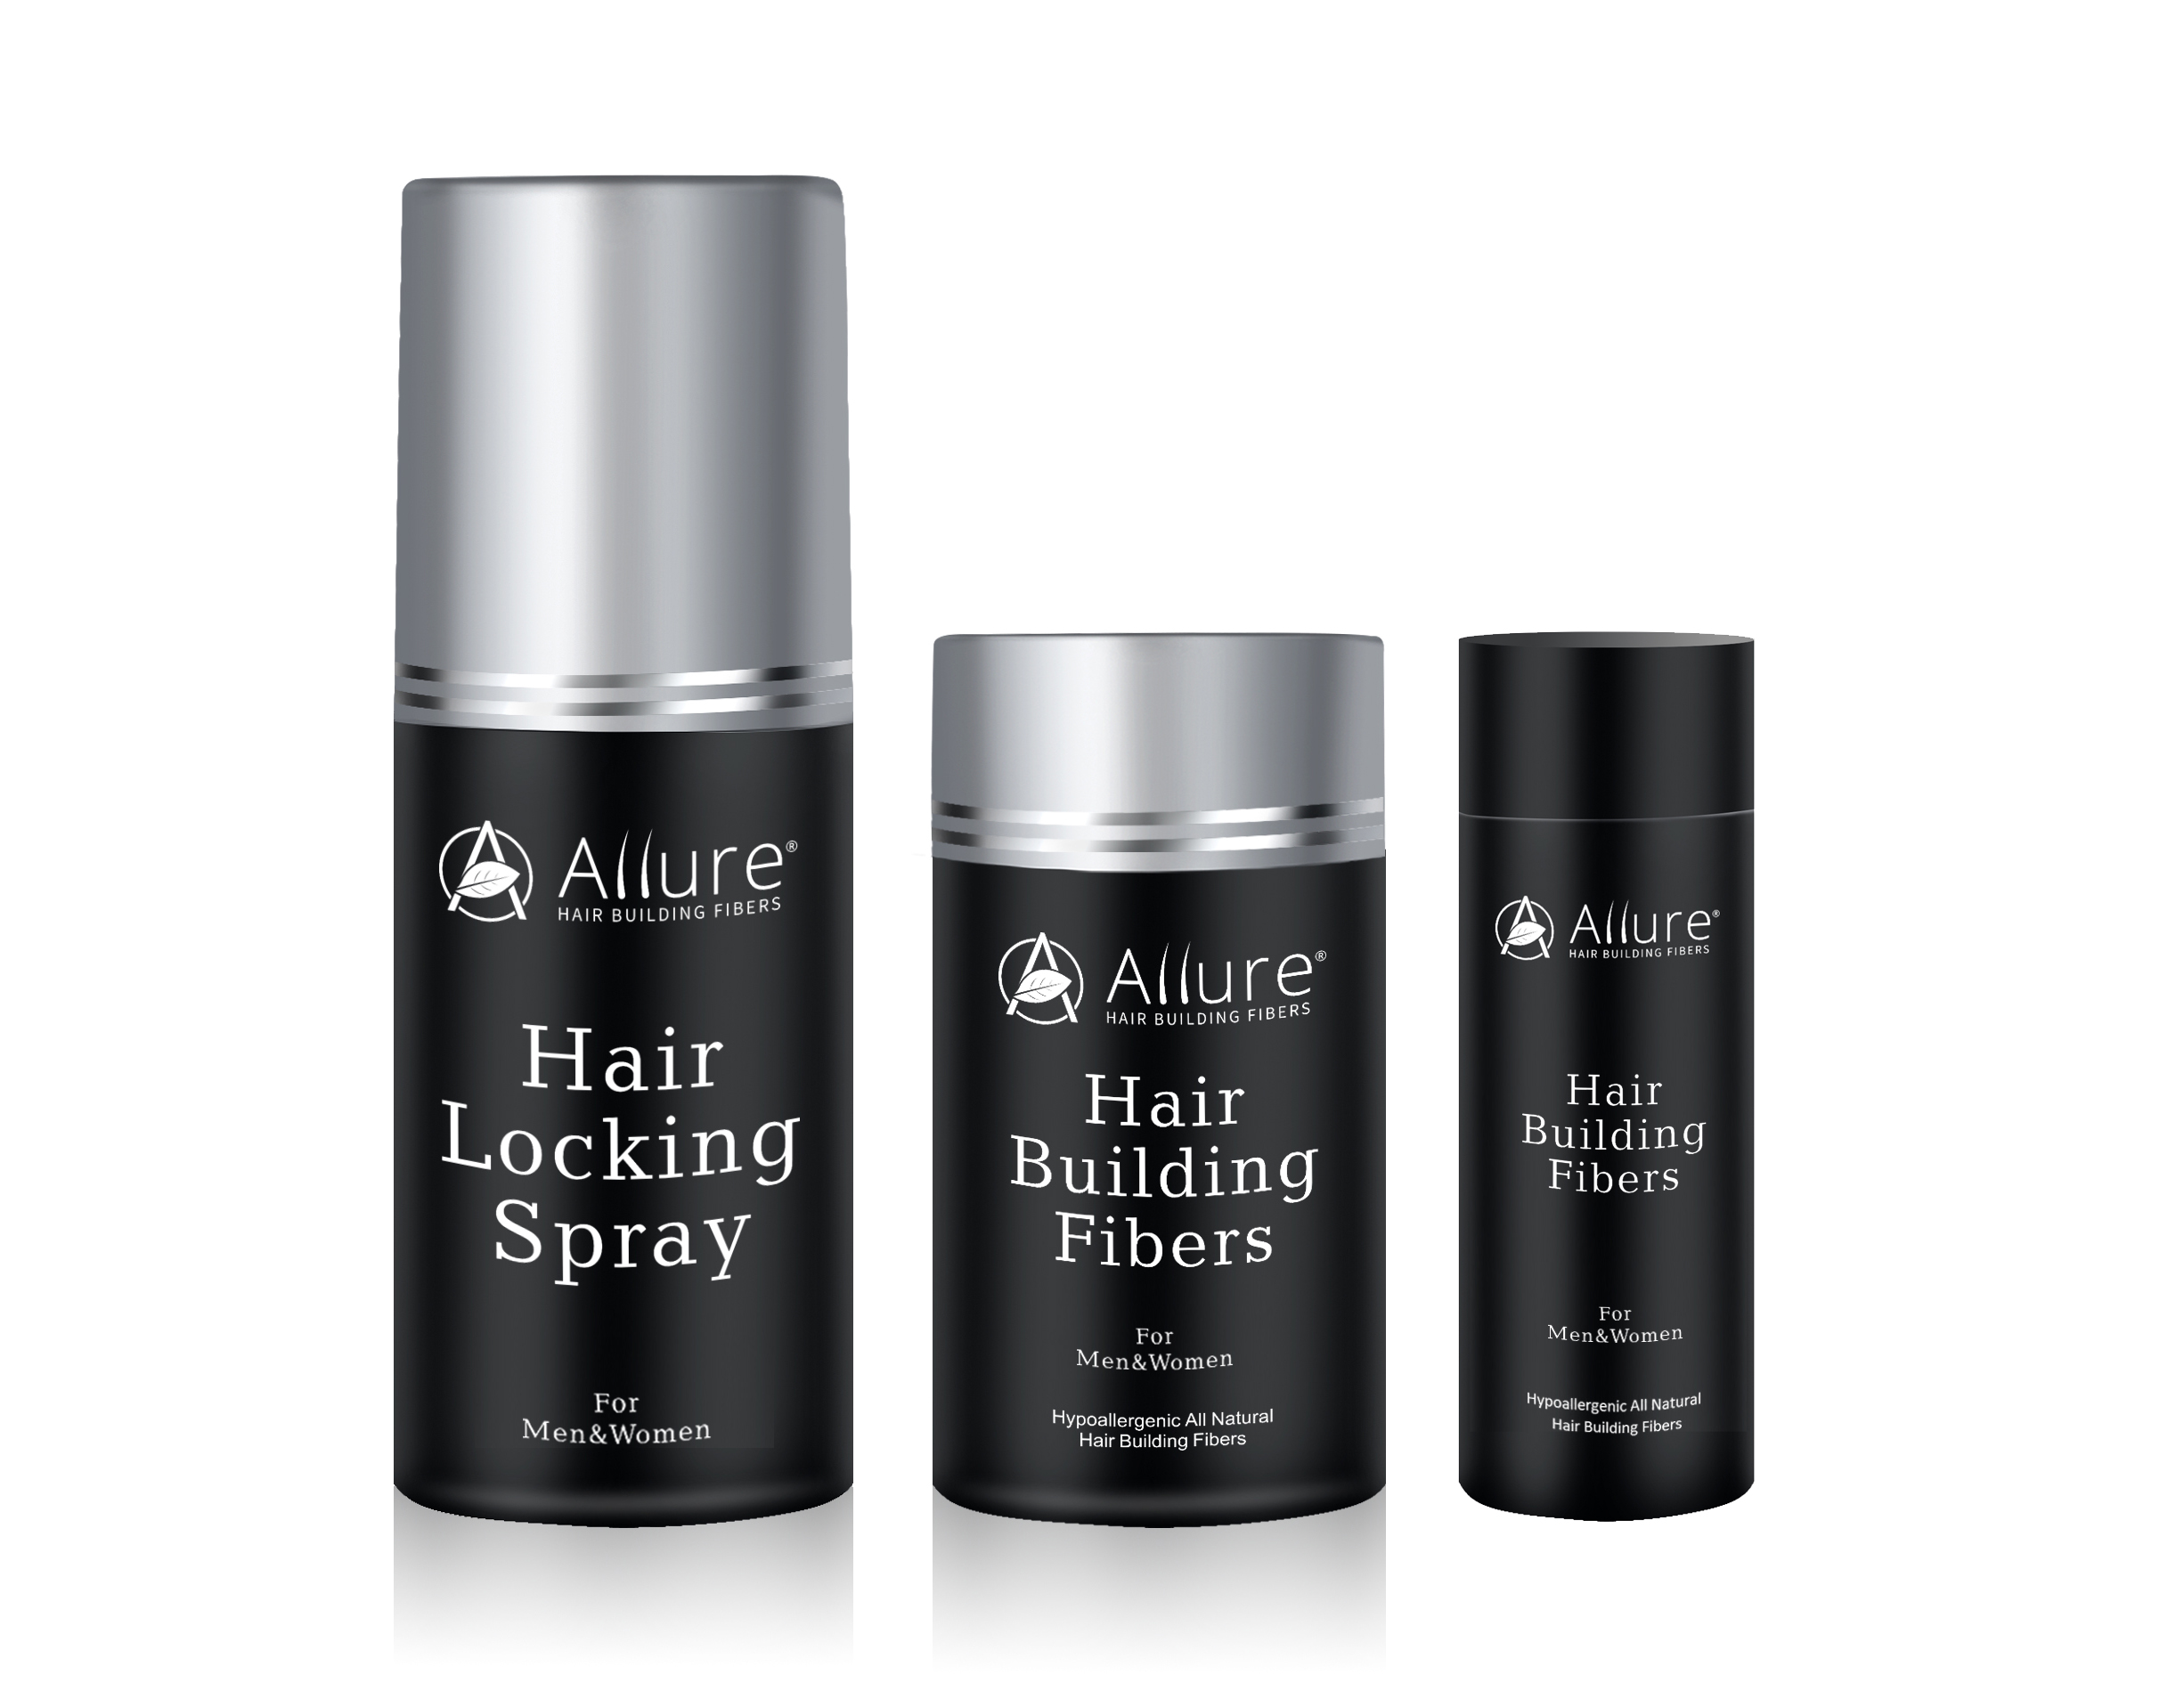 Allure Hair Building Fibers Launches New All-Natural Hypoallergenic Hair Loss Solution